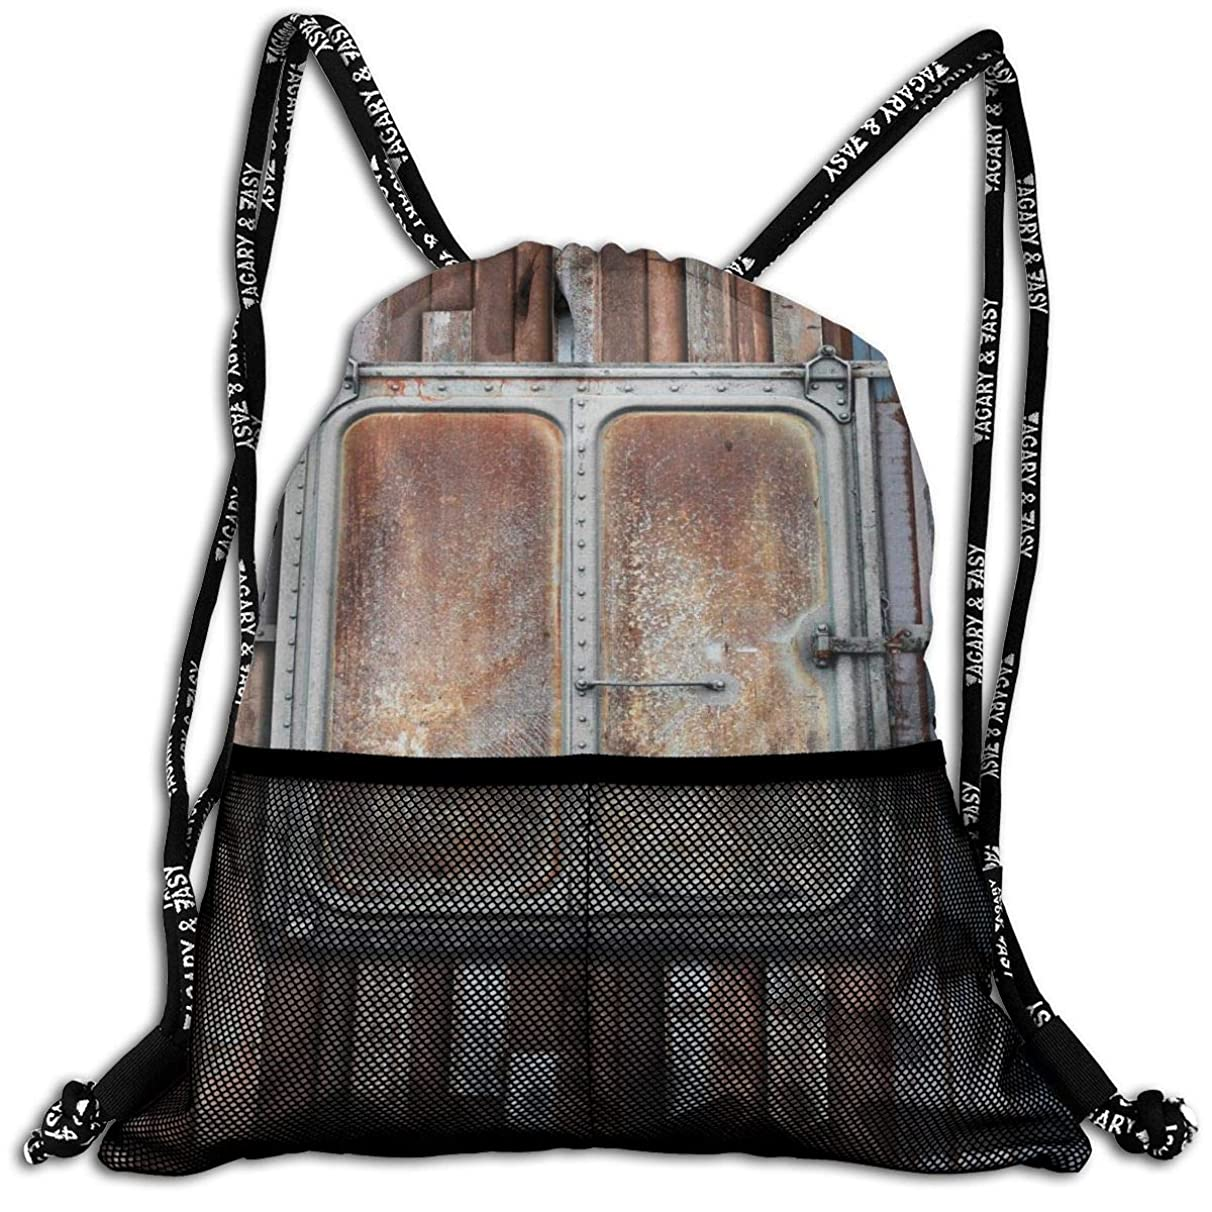 Drawstring Backpacks Bags,Marine Wooden Colored Planks With Old Rusty Ship Door Sea Life Art Print,5 Liter Capacity,Adjustable